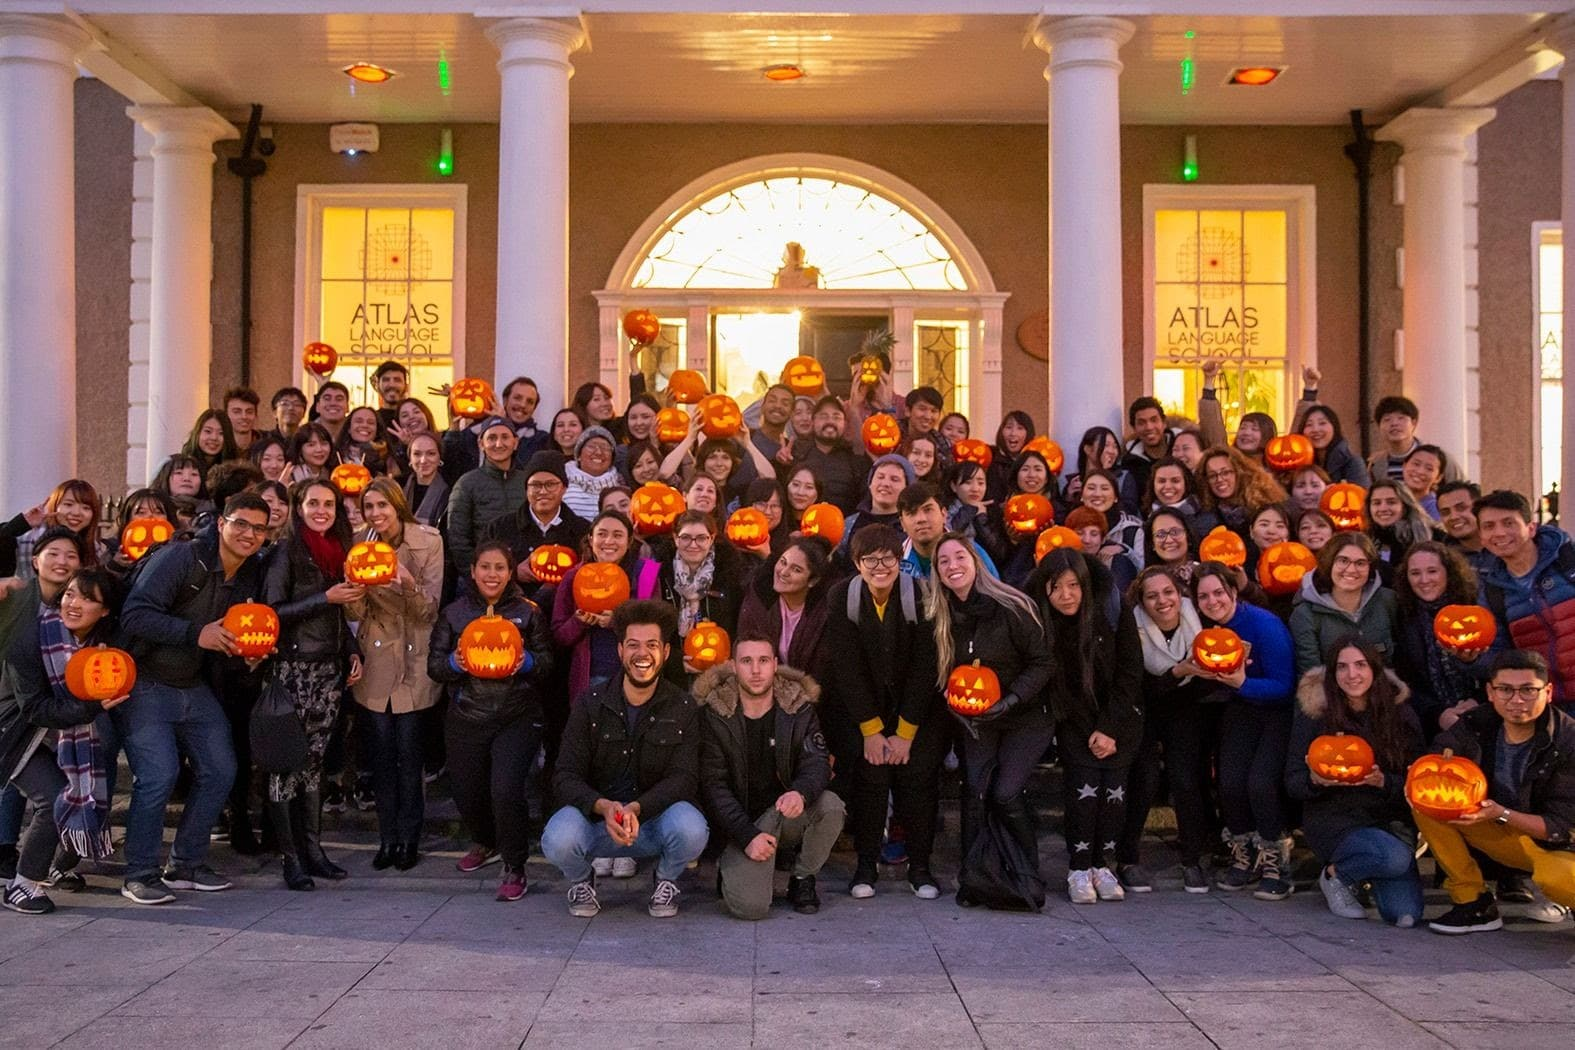 Students with carved pumpkins in front of the school